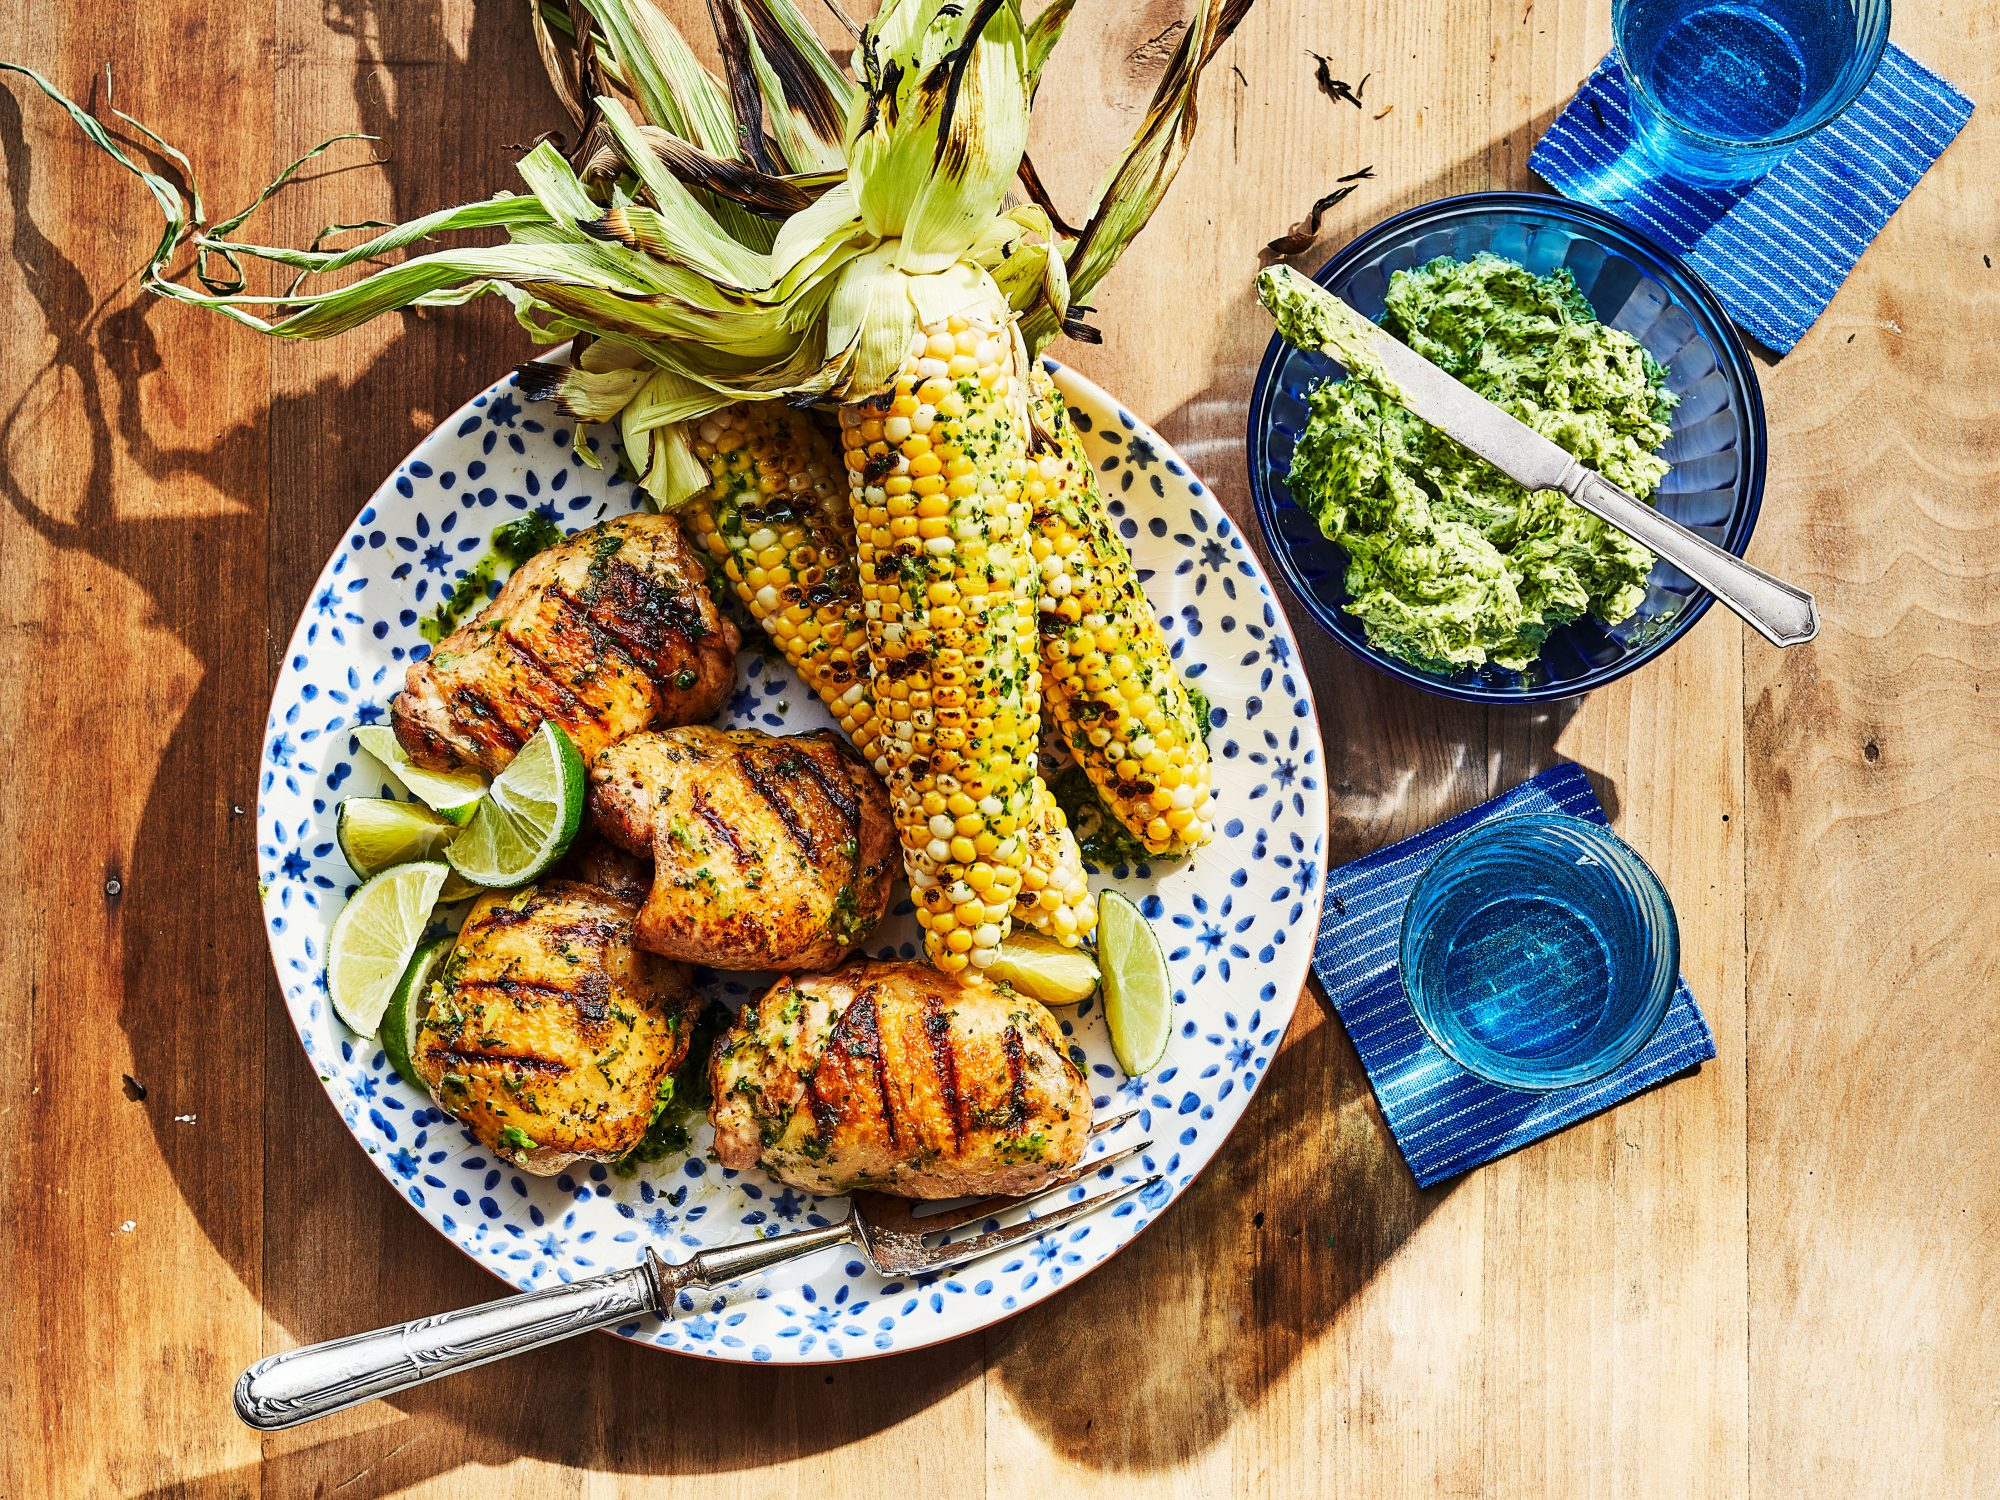 Grilled Chicken and Corn with Charred Scallion-Lime Butter Robin Bashinsky